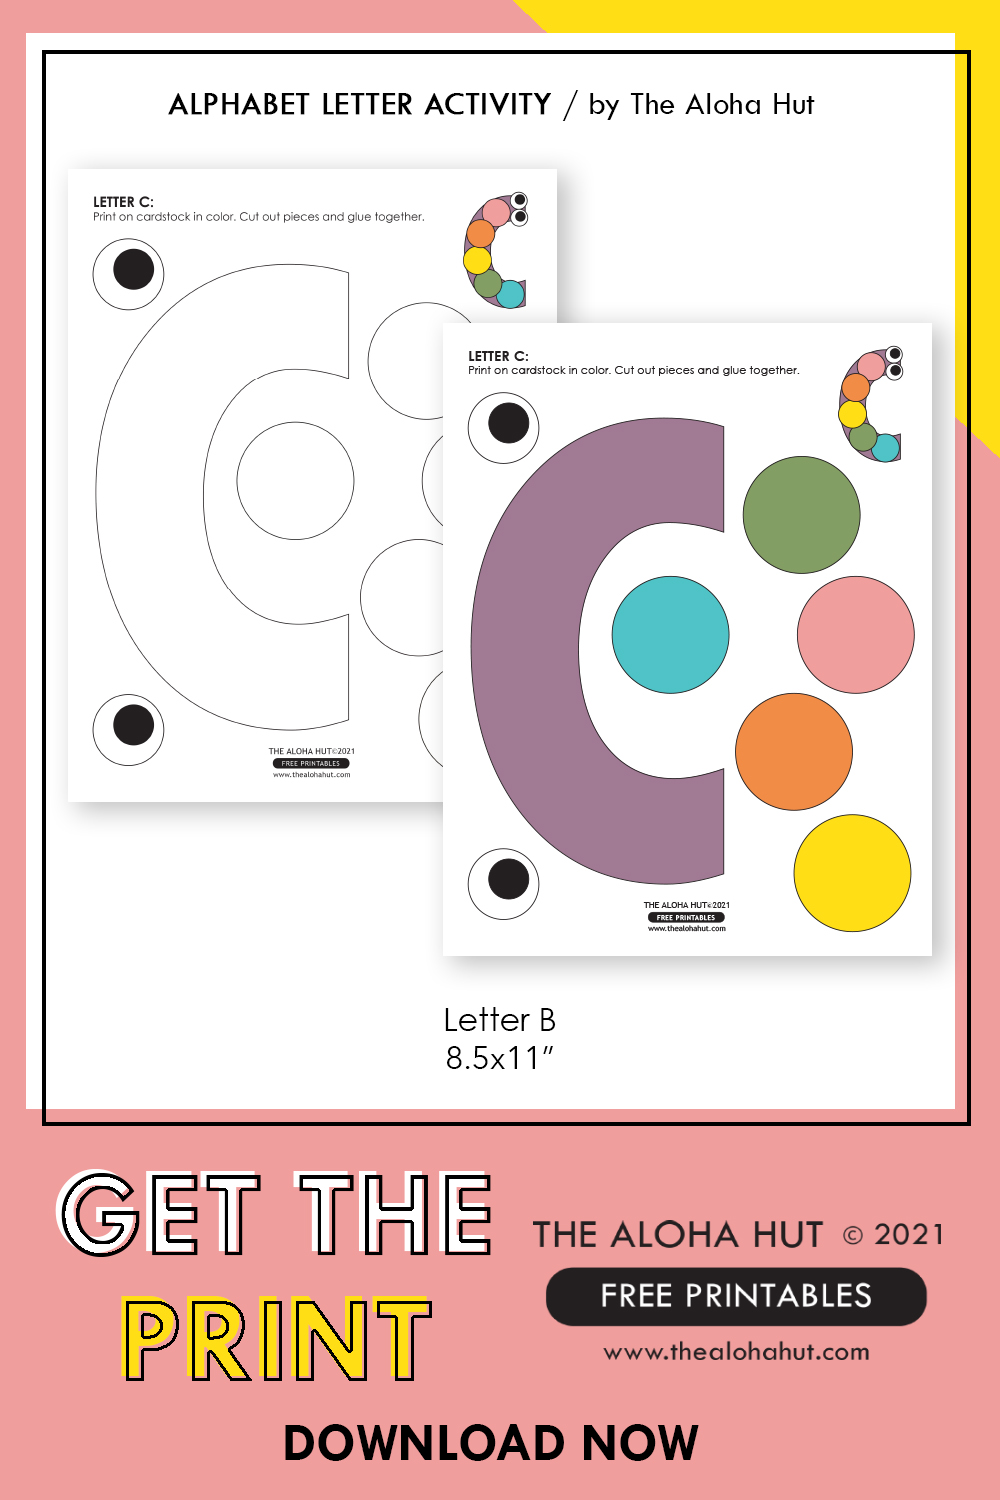 Alphabet Letter Crafts - Letter C - free printable 2 by the Aloha Hut